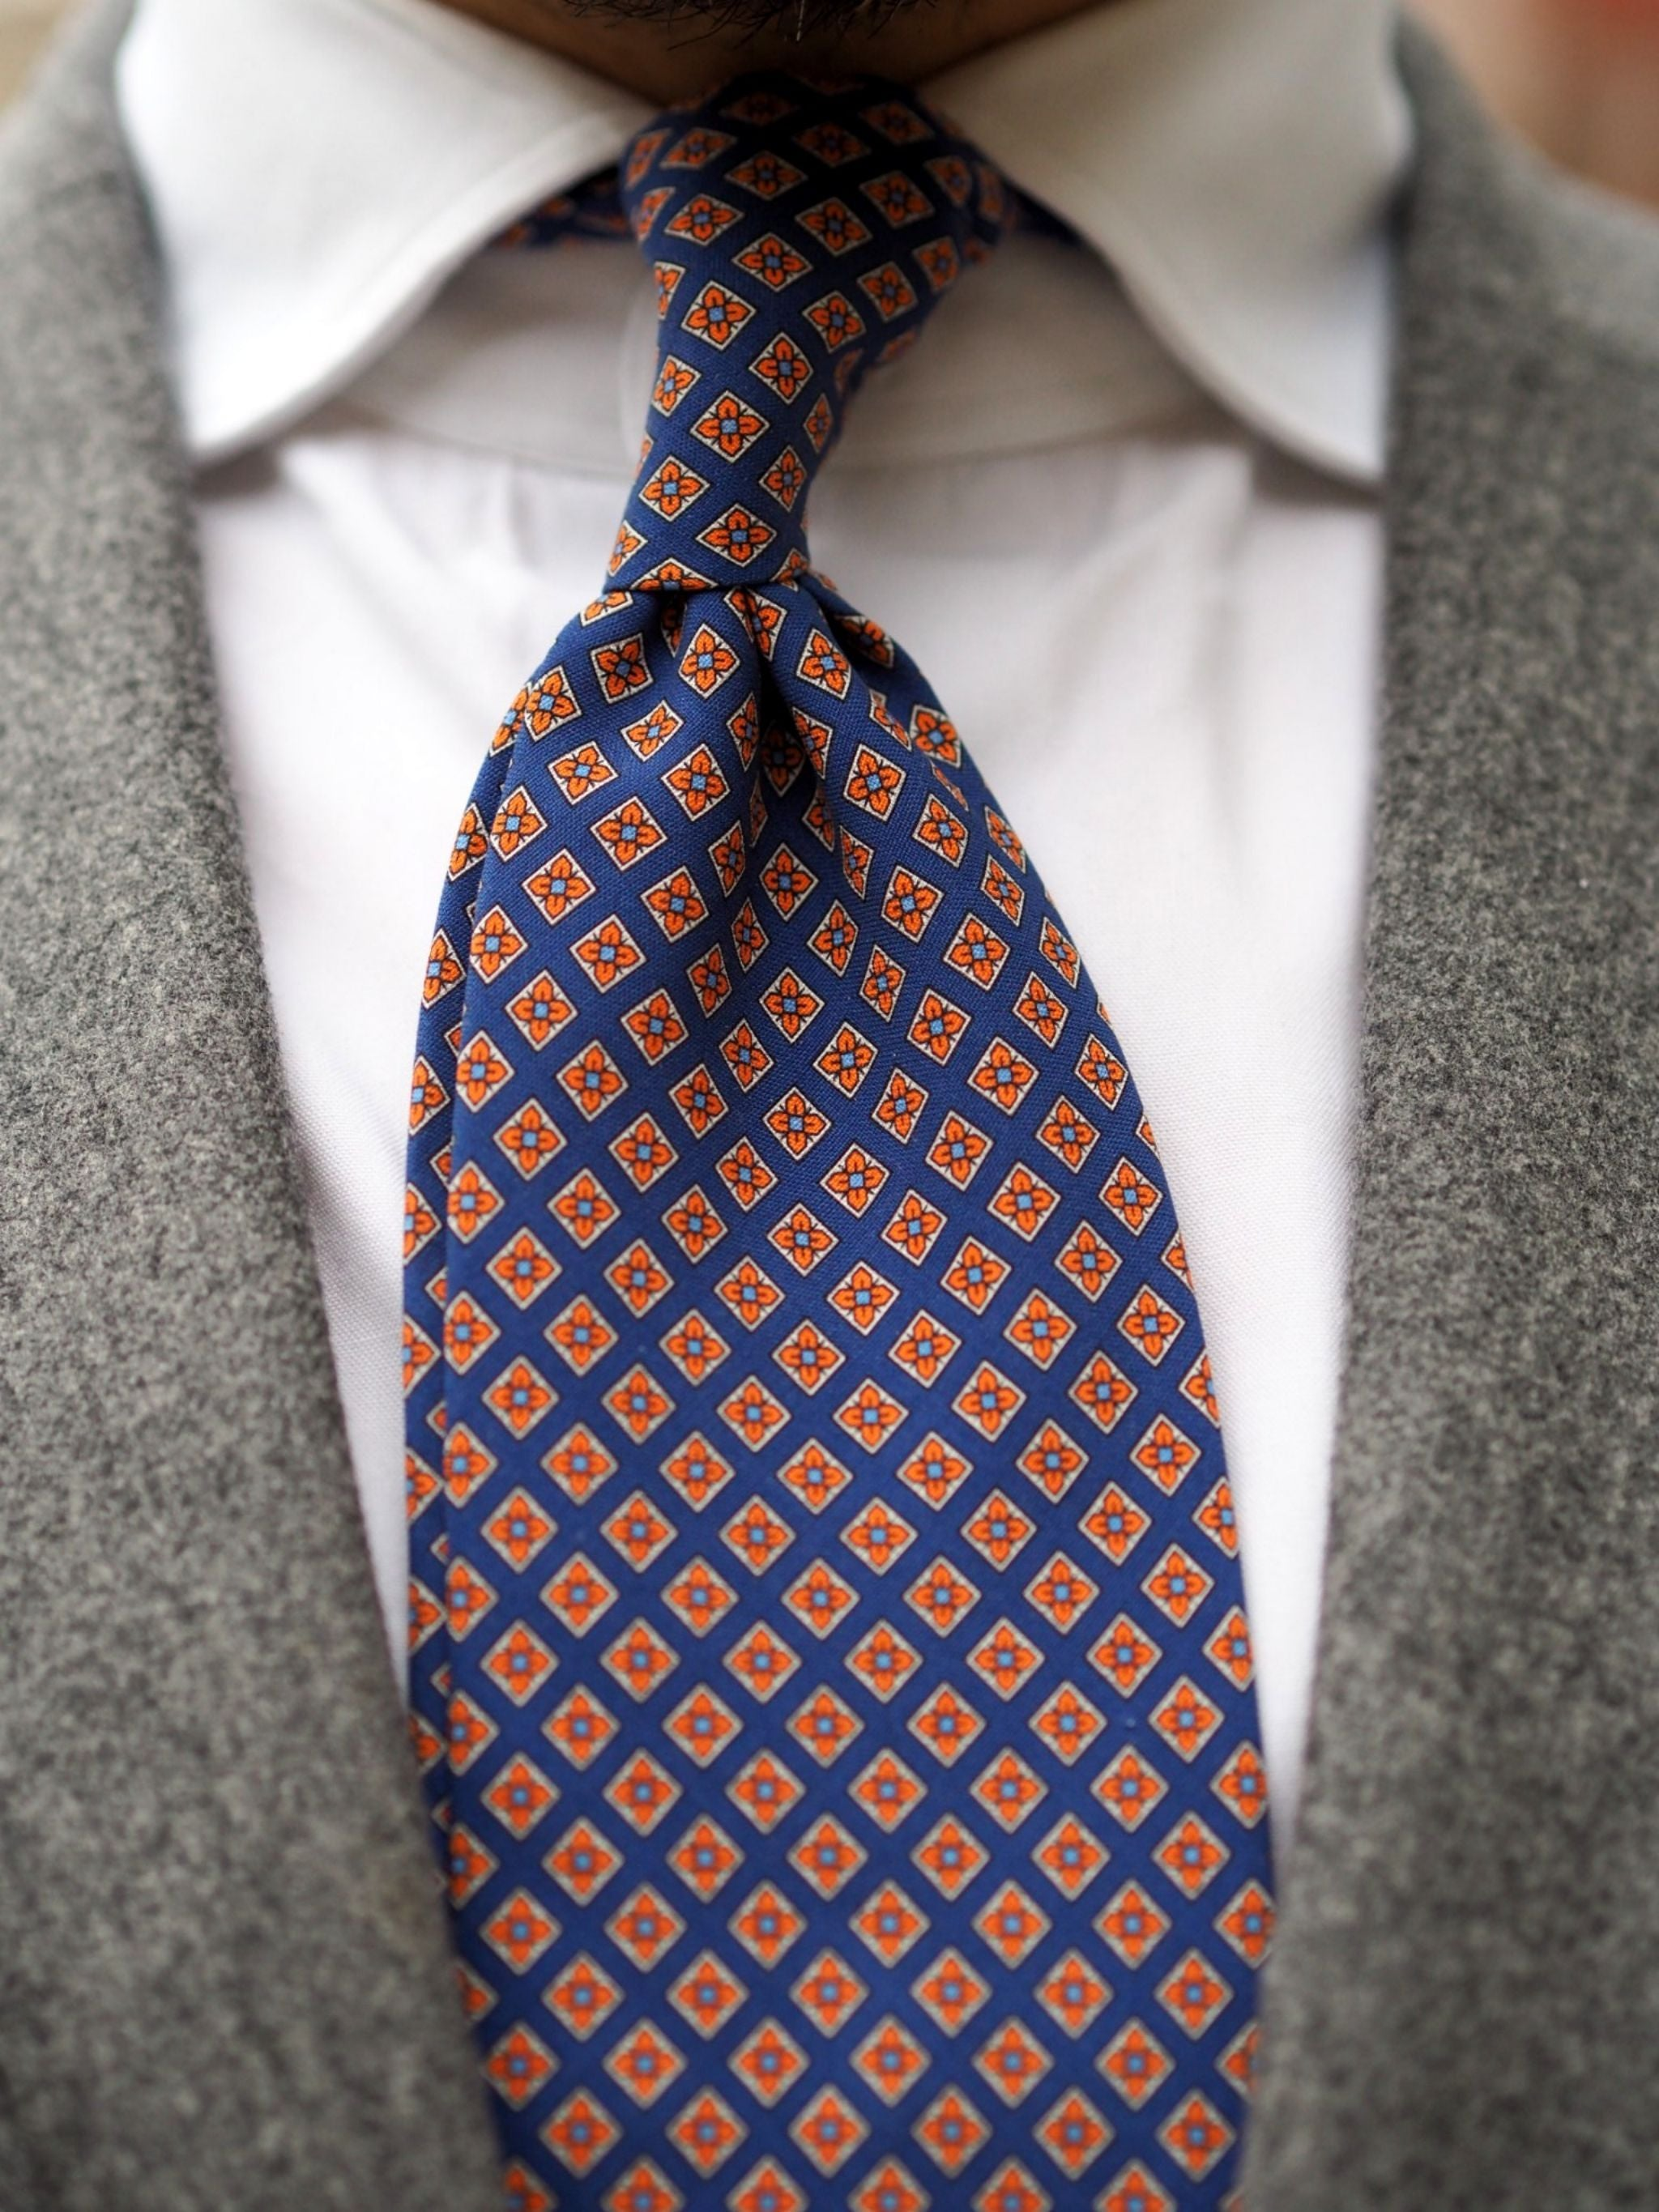 Autumnal business casual outfits - tie details